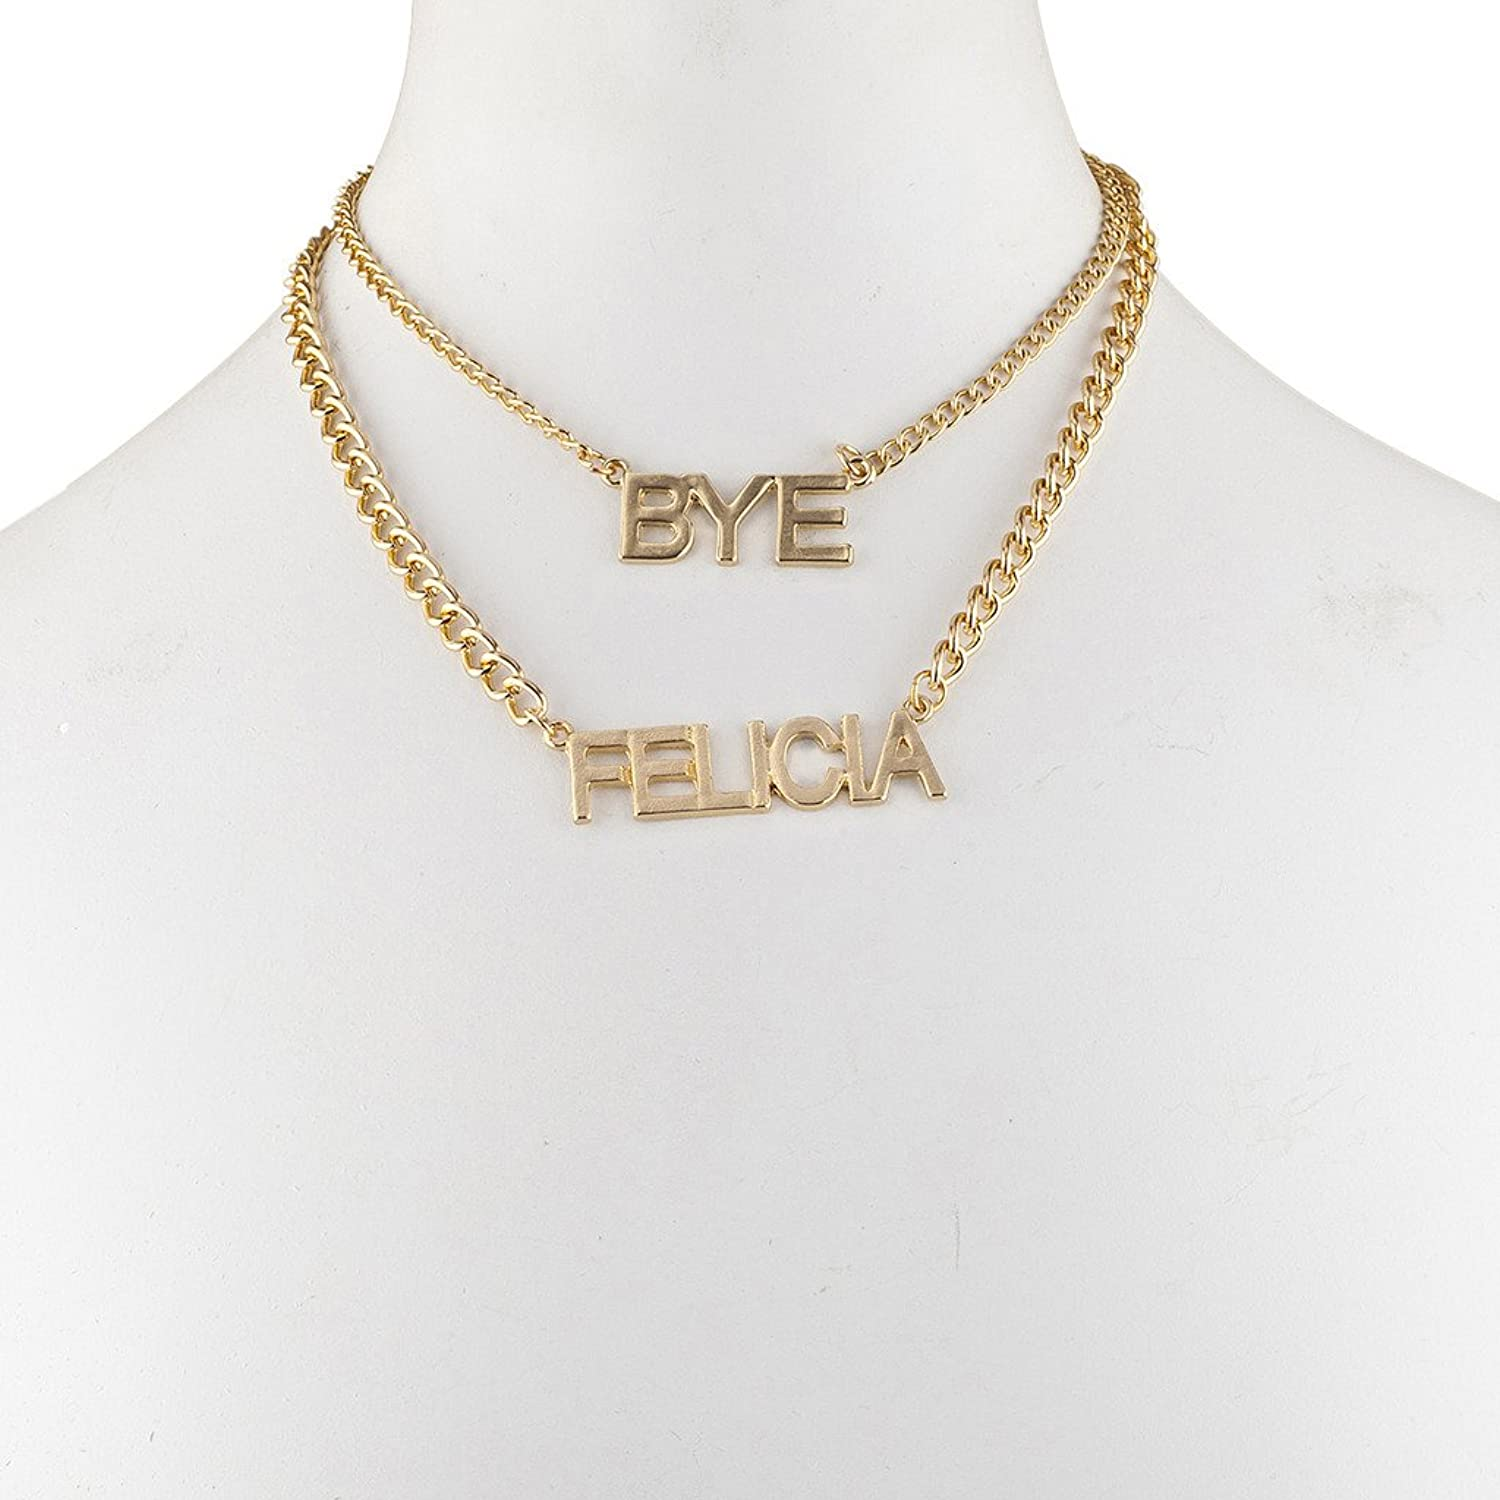 Lux Accessories Trendy Goldtone Bye Felicia Layered Verbiage Name Plate Necklace OM2iSacM